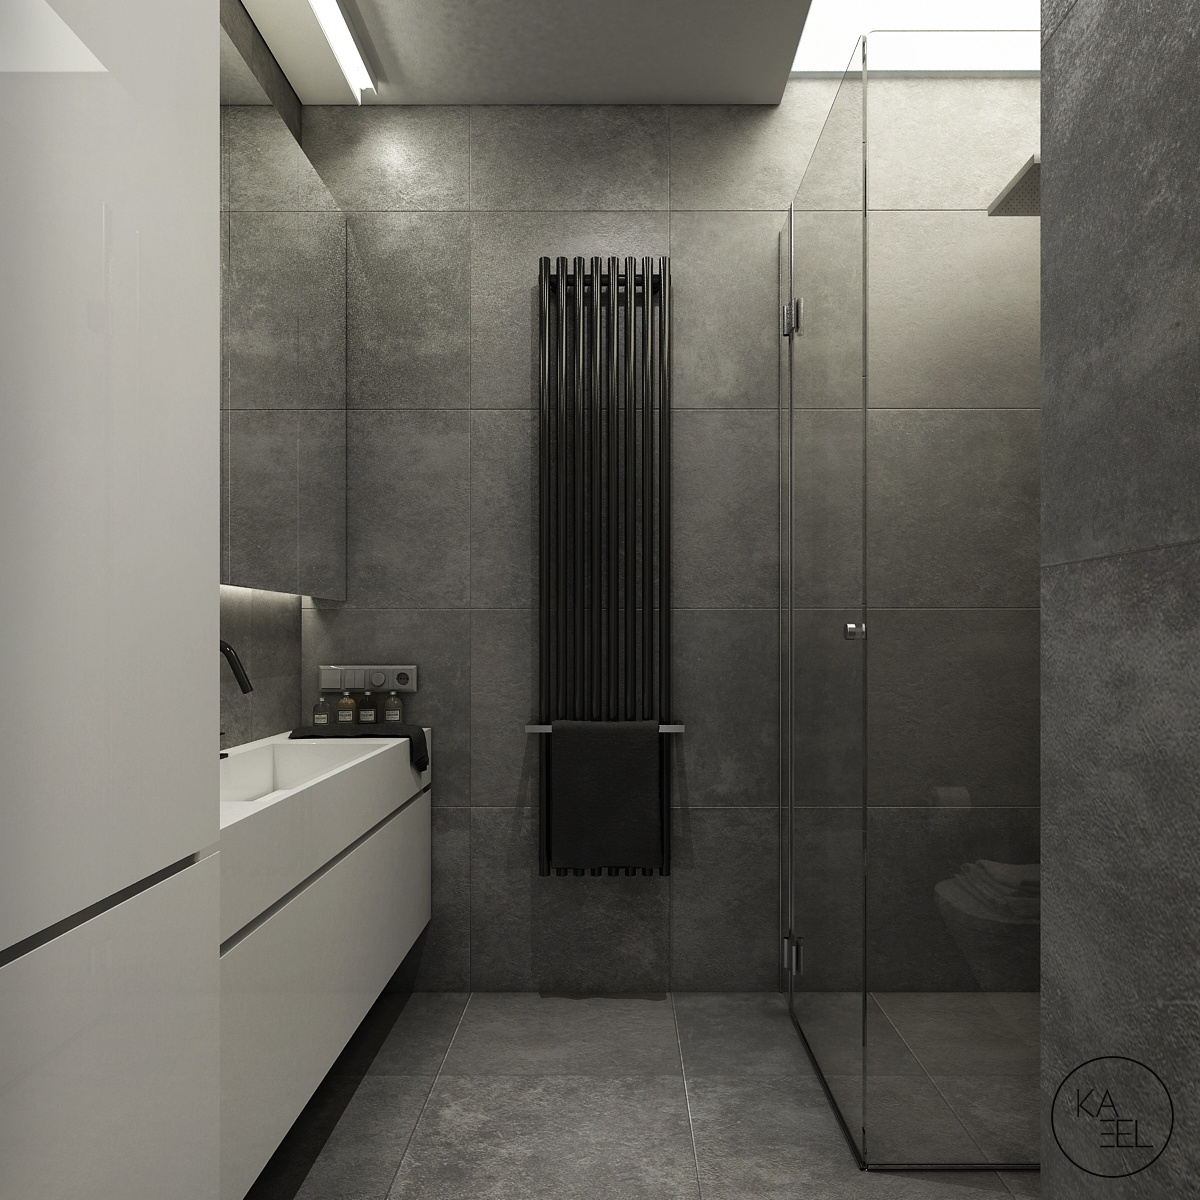 Slate tile bathroom interior design ideas for Slate tile bathroom ideas